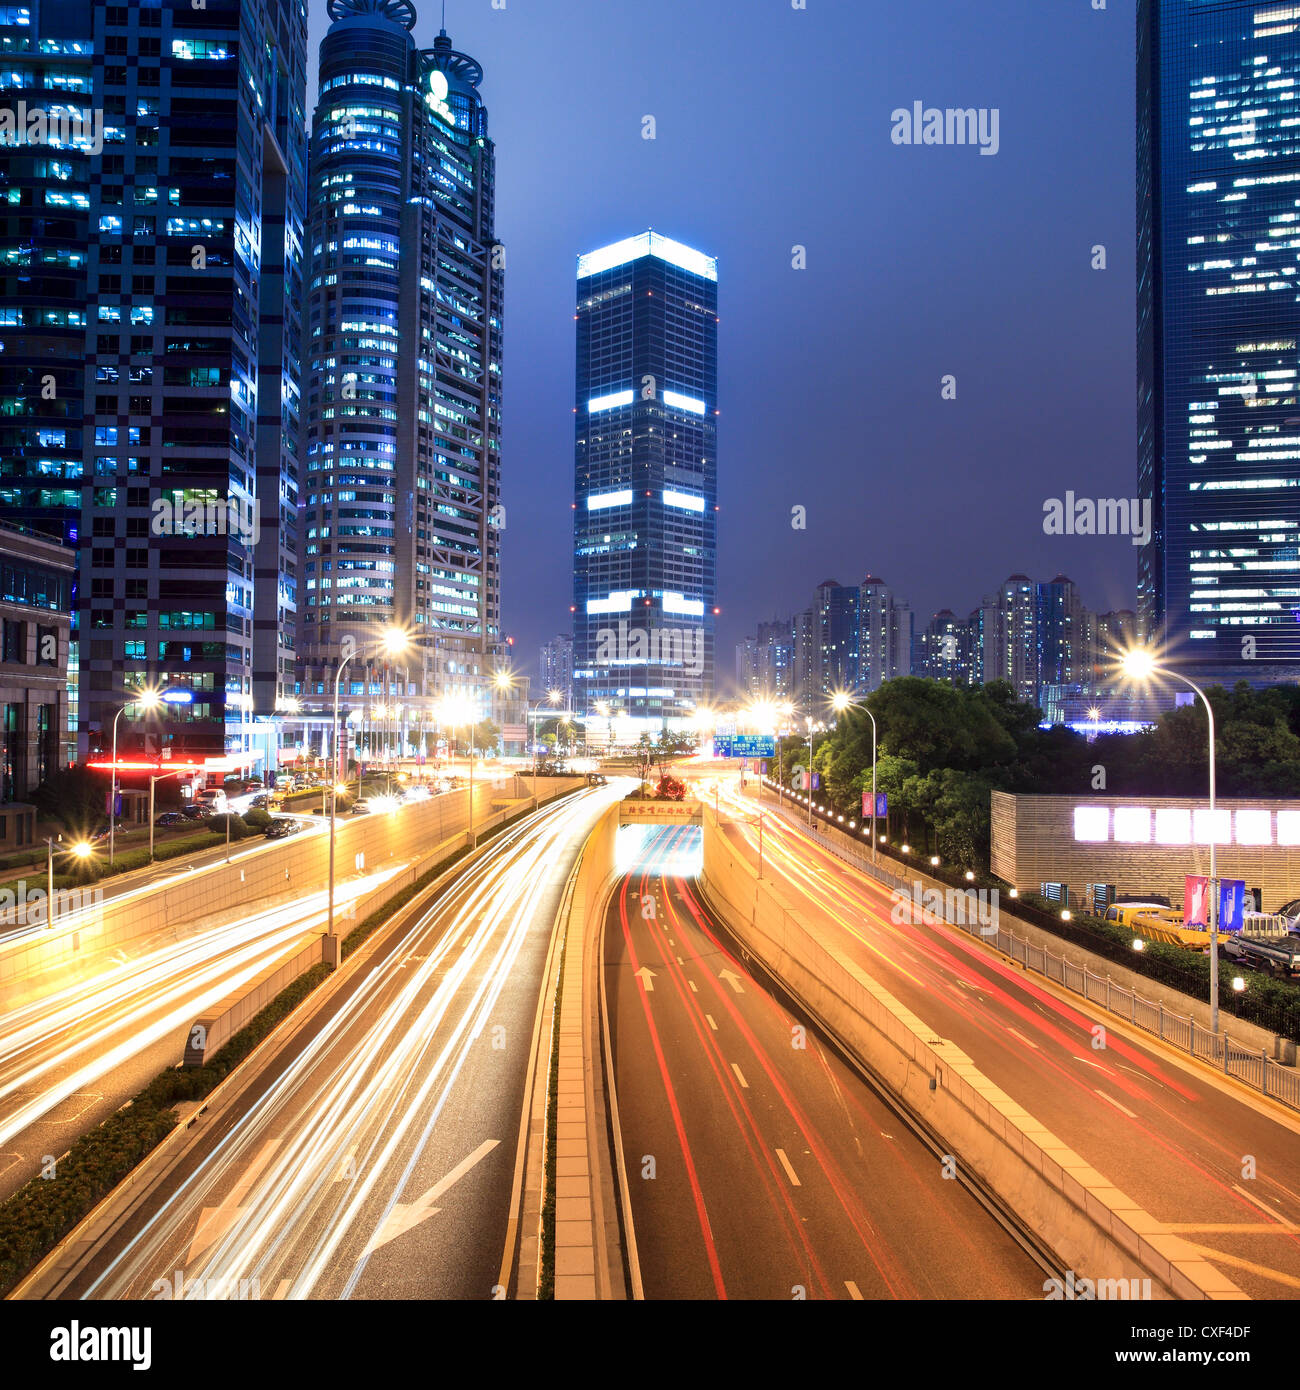 light trails on shanghai financial center at night - Stock Image